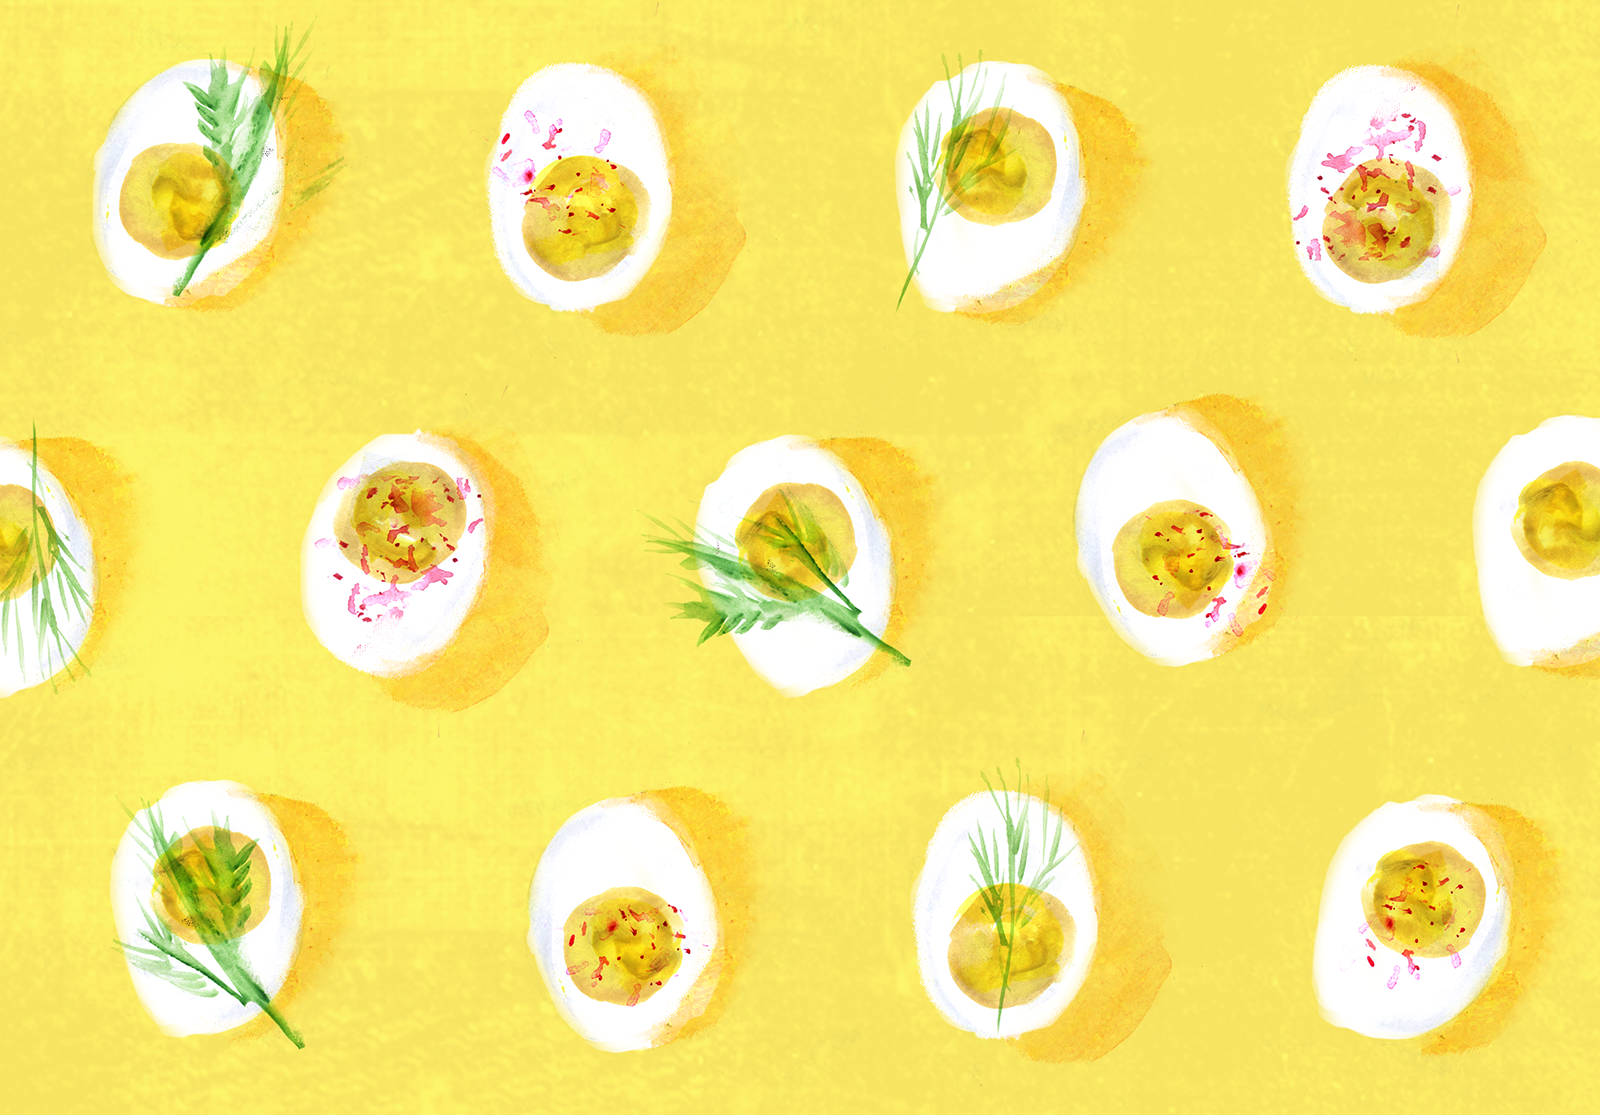 Deviled Eggs, Lauren Monaco Illustration